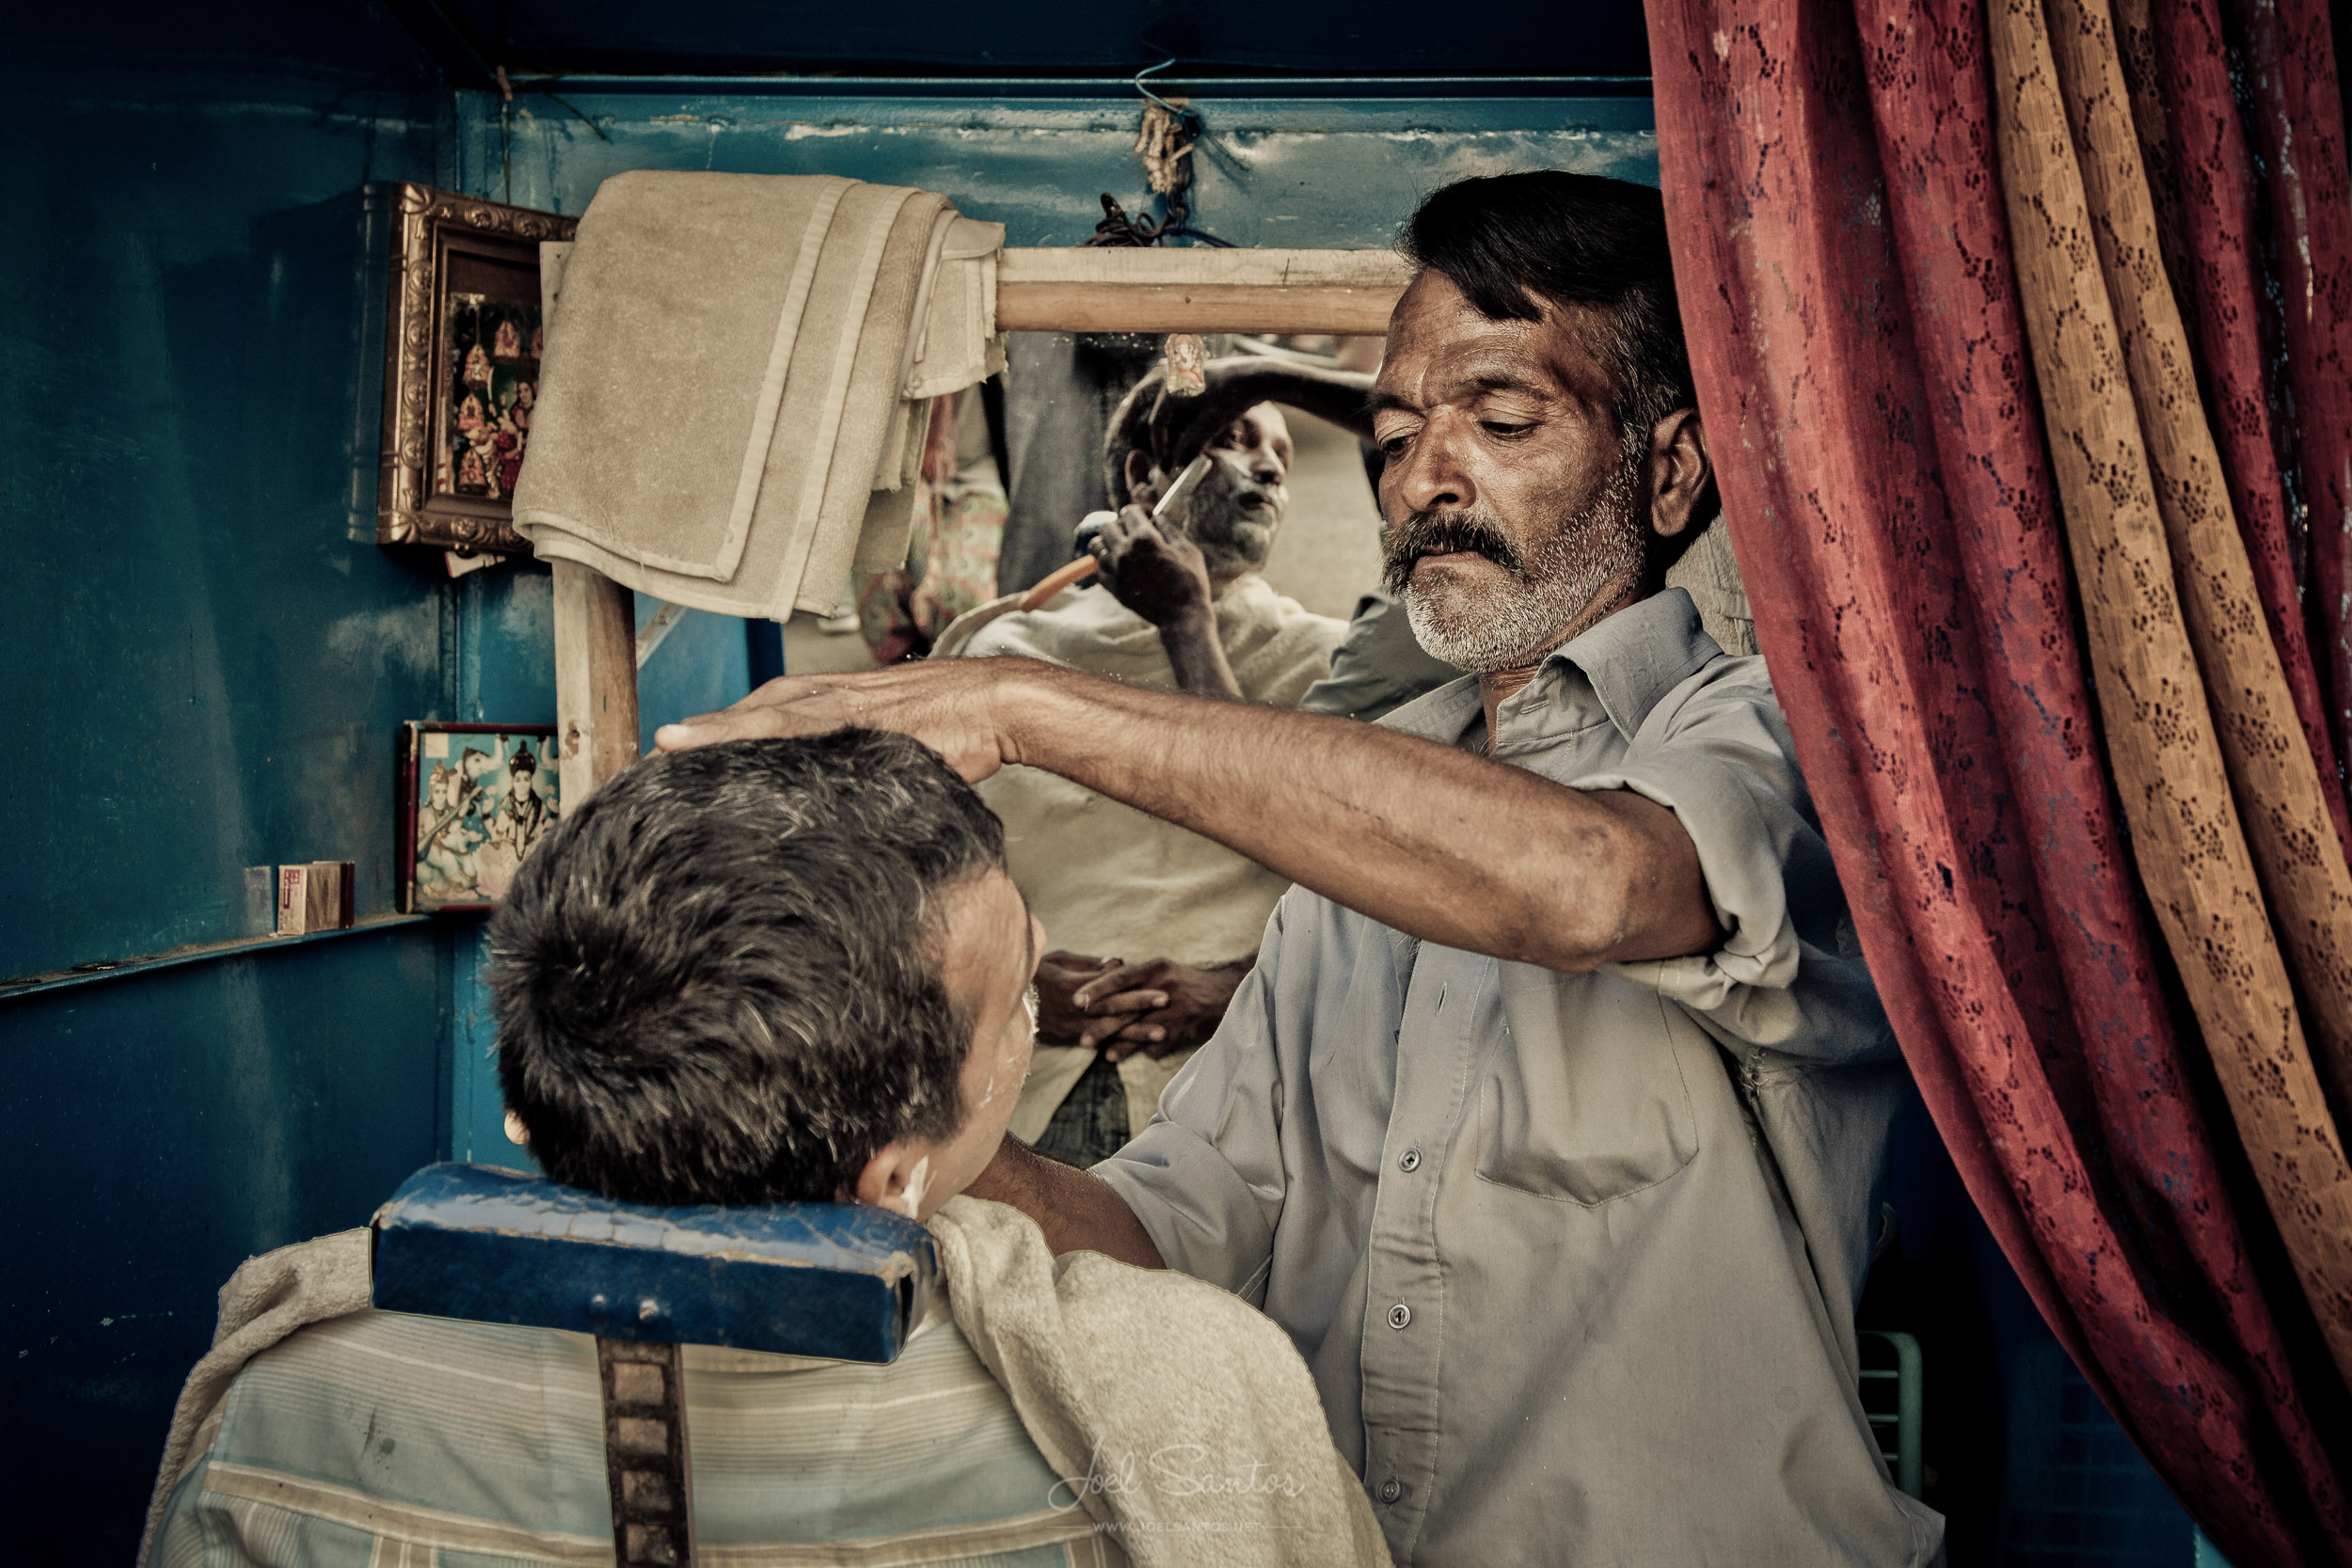 Barber shop, Udaipur, India